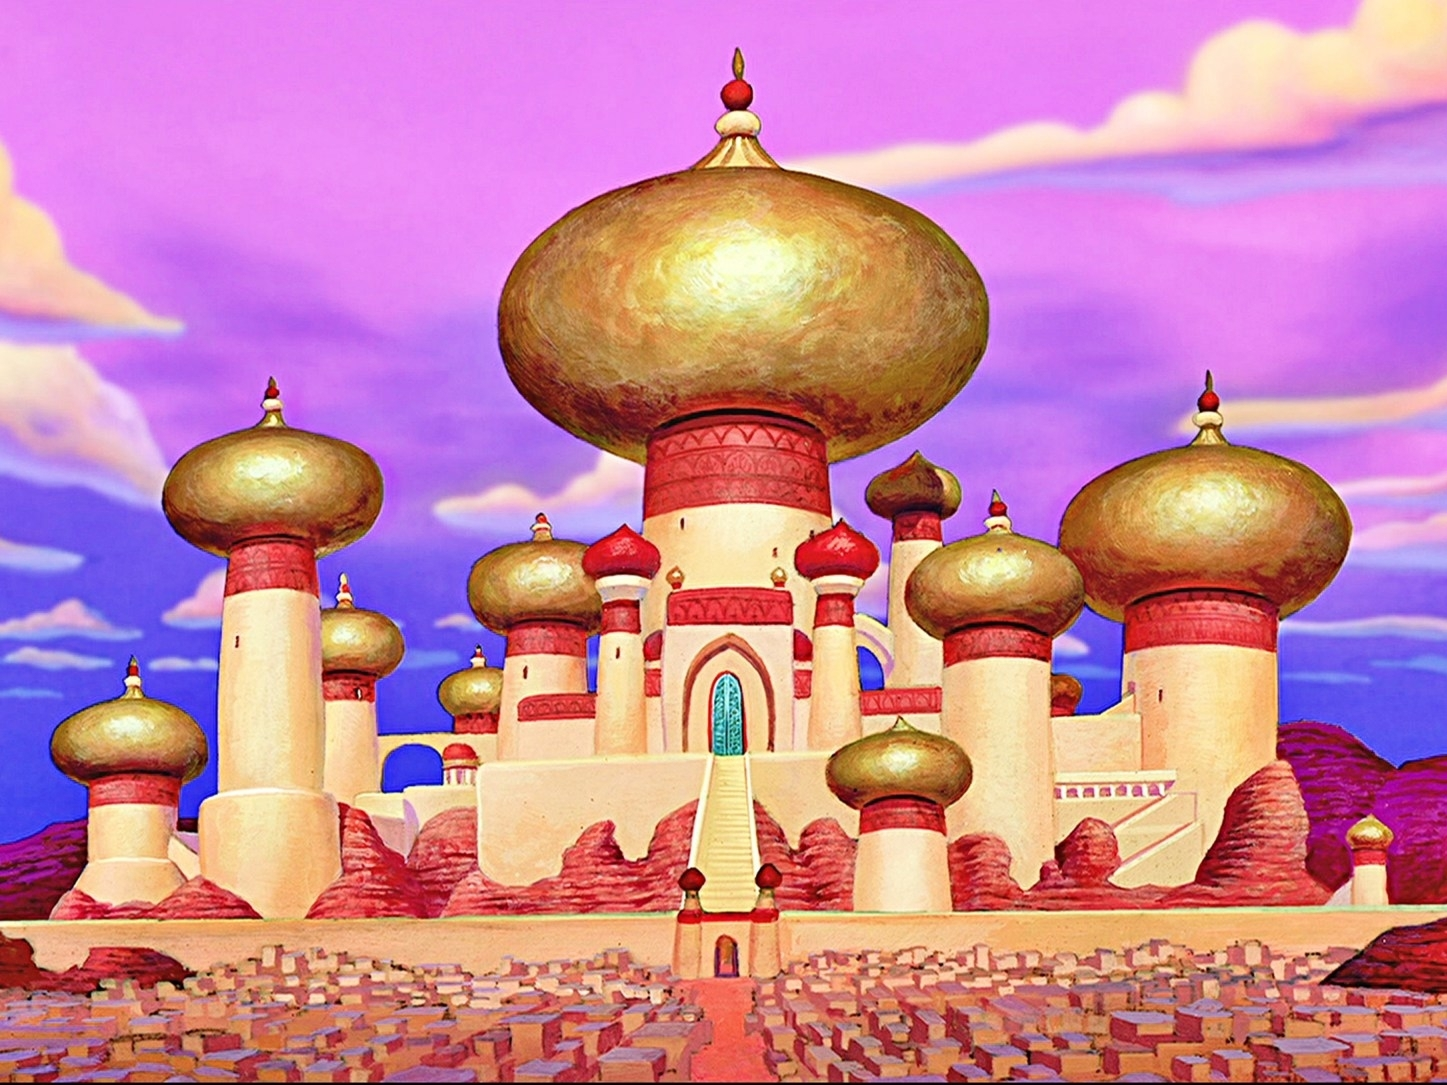 Slide 7 of 41: It provided the inspiration for the Sultan's palace in the movie Aladdin, released in 1992, although the movie has an Arabian, rather than Indian, setting.